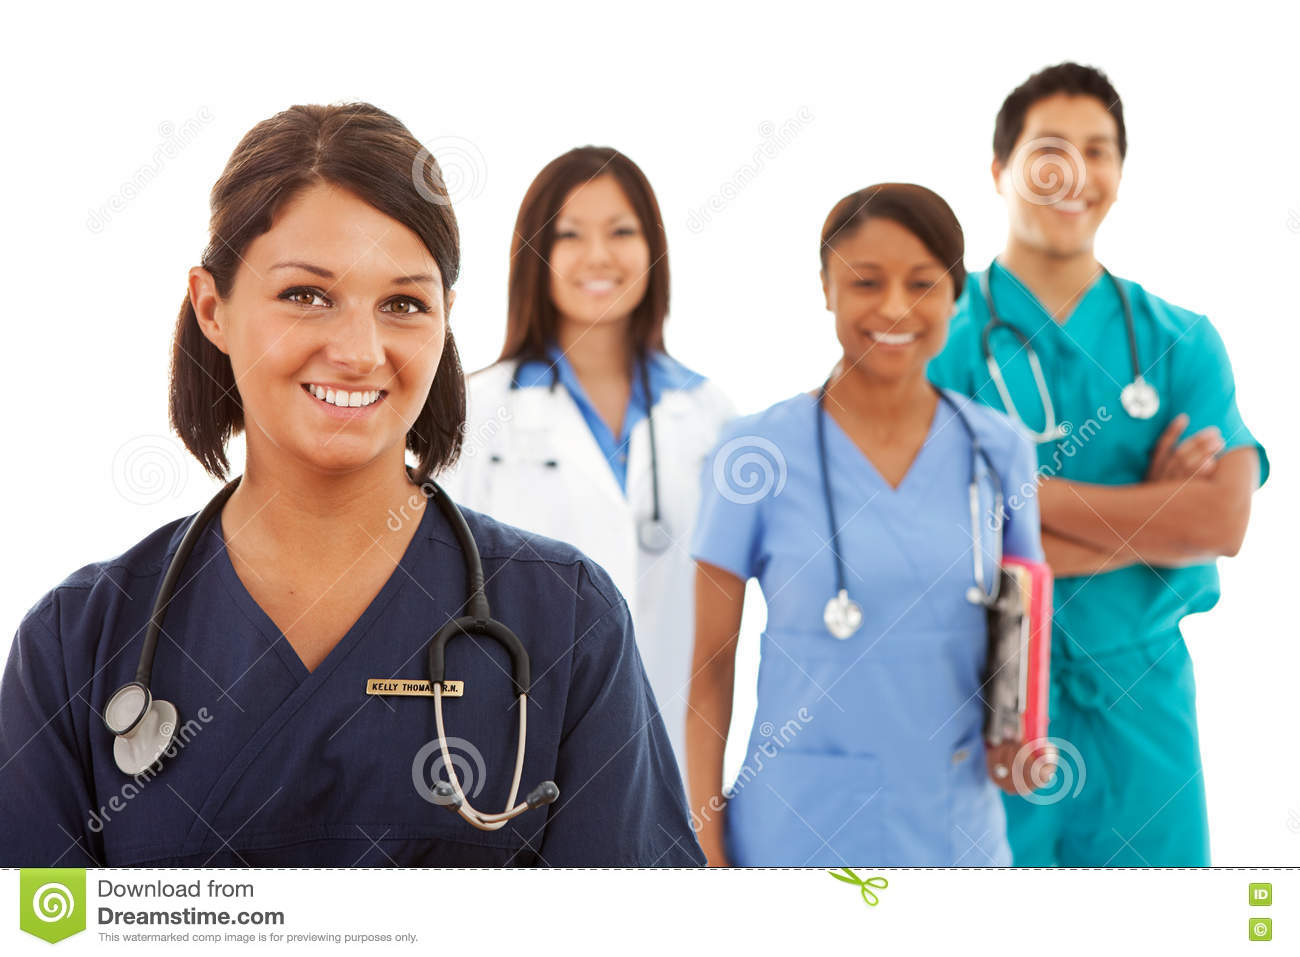 Doctors Male And Female Doctors And Nurses Stock Image -7425